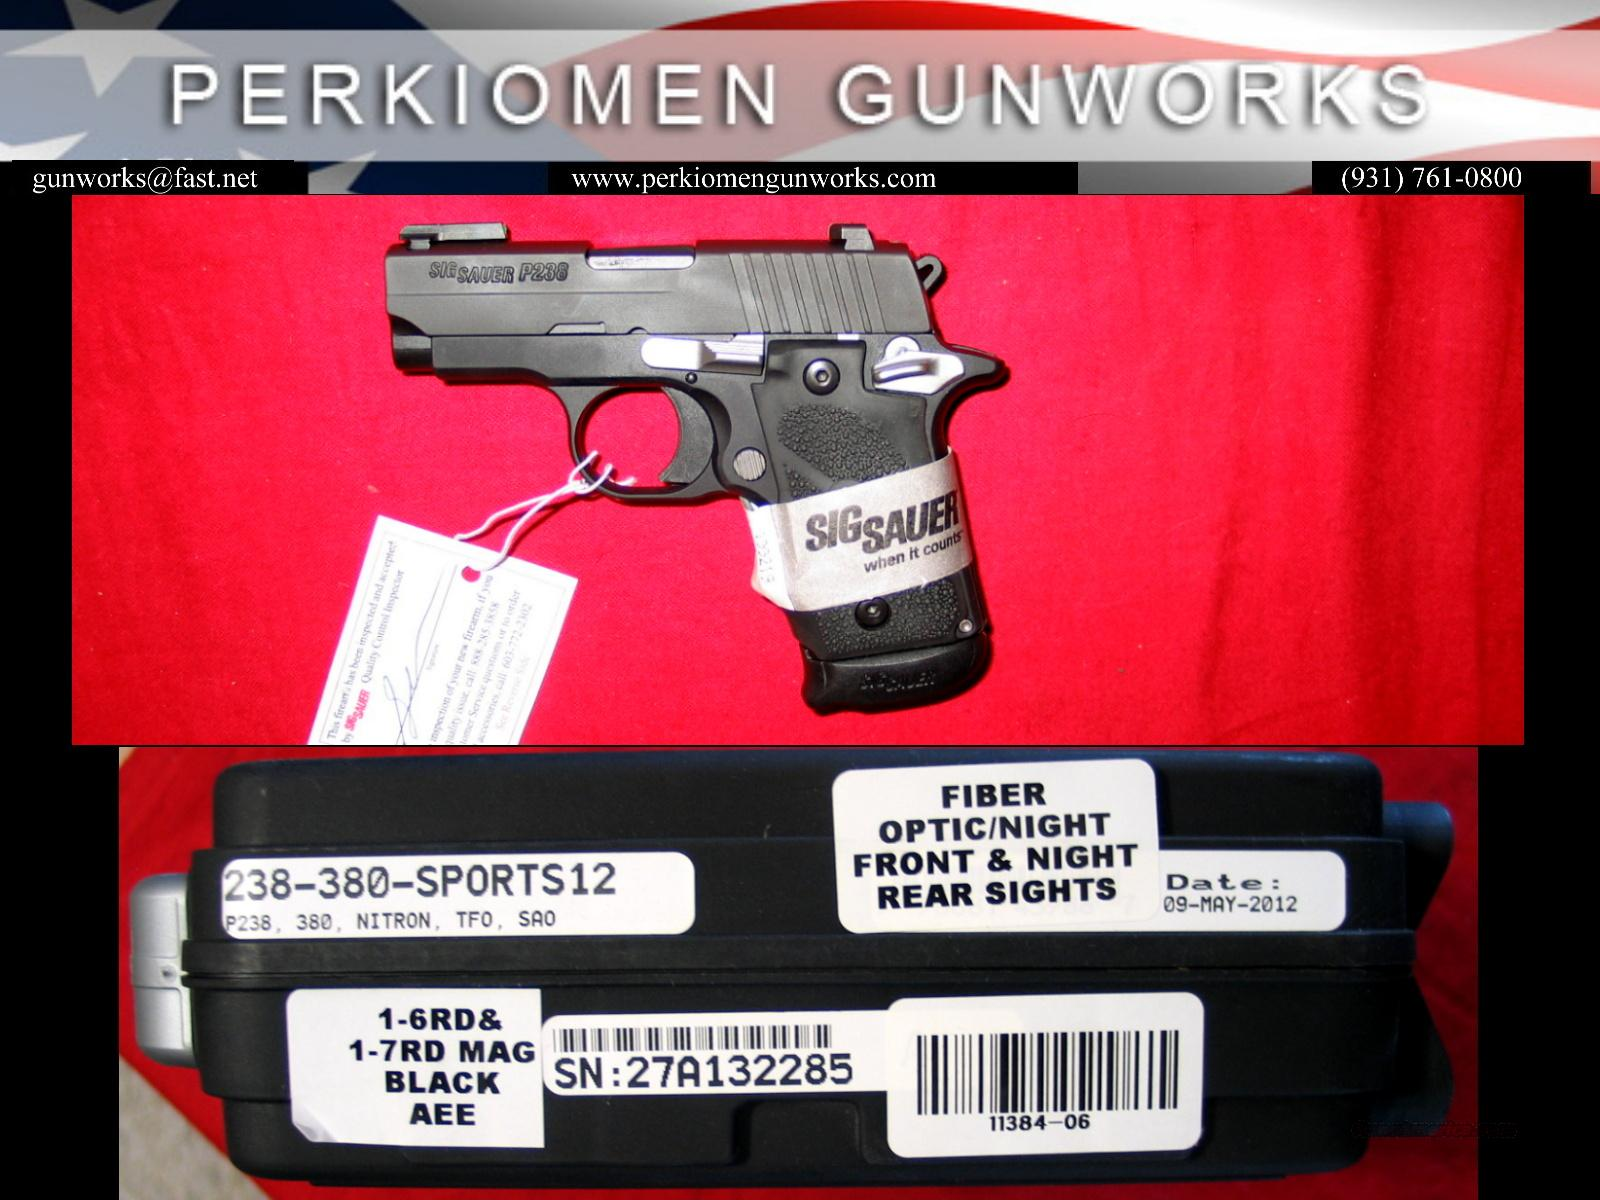 P238-380-SPORTS12 Nightmare - NIB w/Hogue grips and 2 mags  Guns > Pistols > Sig - Sauer/Sigarms Pistols > P238